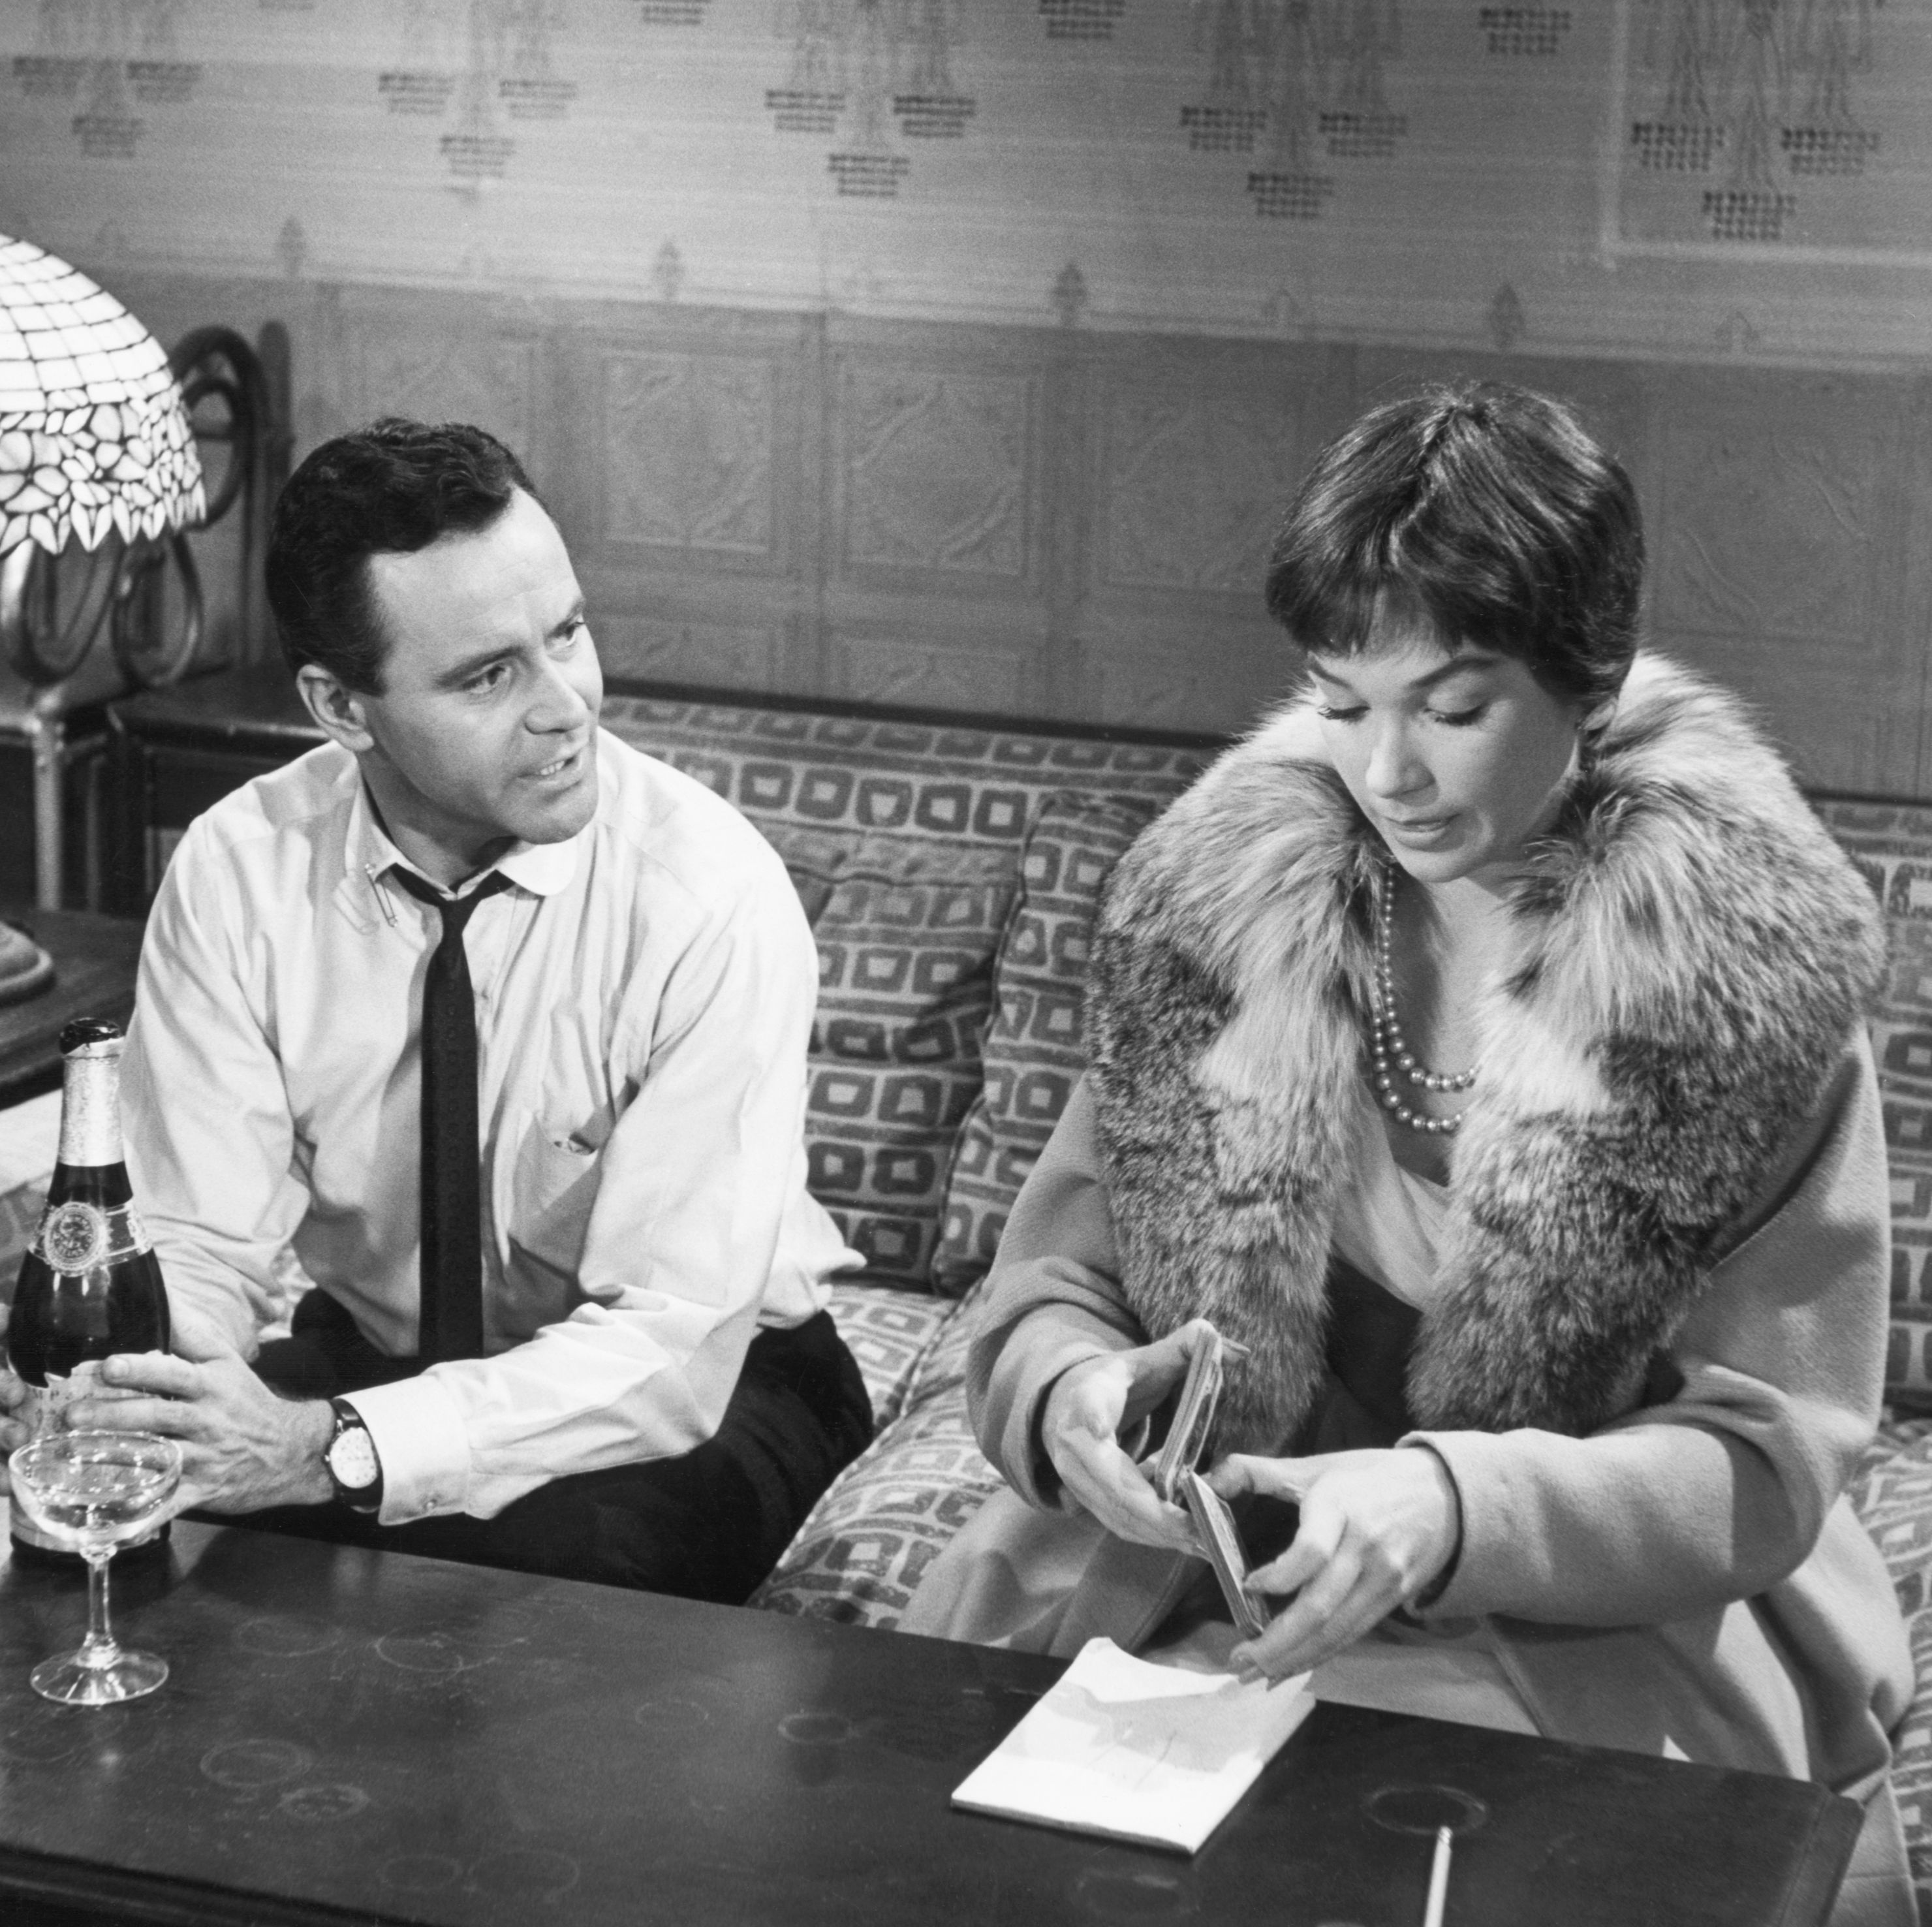 The Apartment An ambitious young man played by Jack Lemmon ingratiates himself to his corporate superiors by offering his apartment for their extramarital affairs. But things get complicated when he discovers that his office crush (Shirley MacLaine) is also having an affair with his boss.